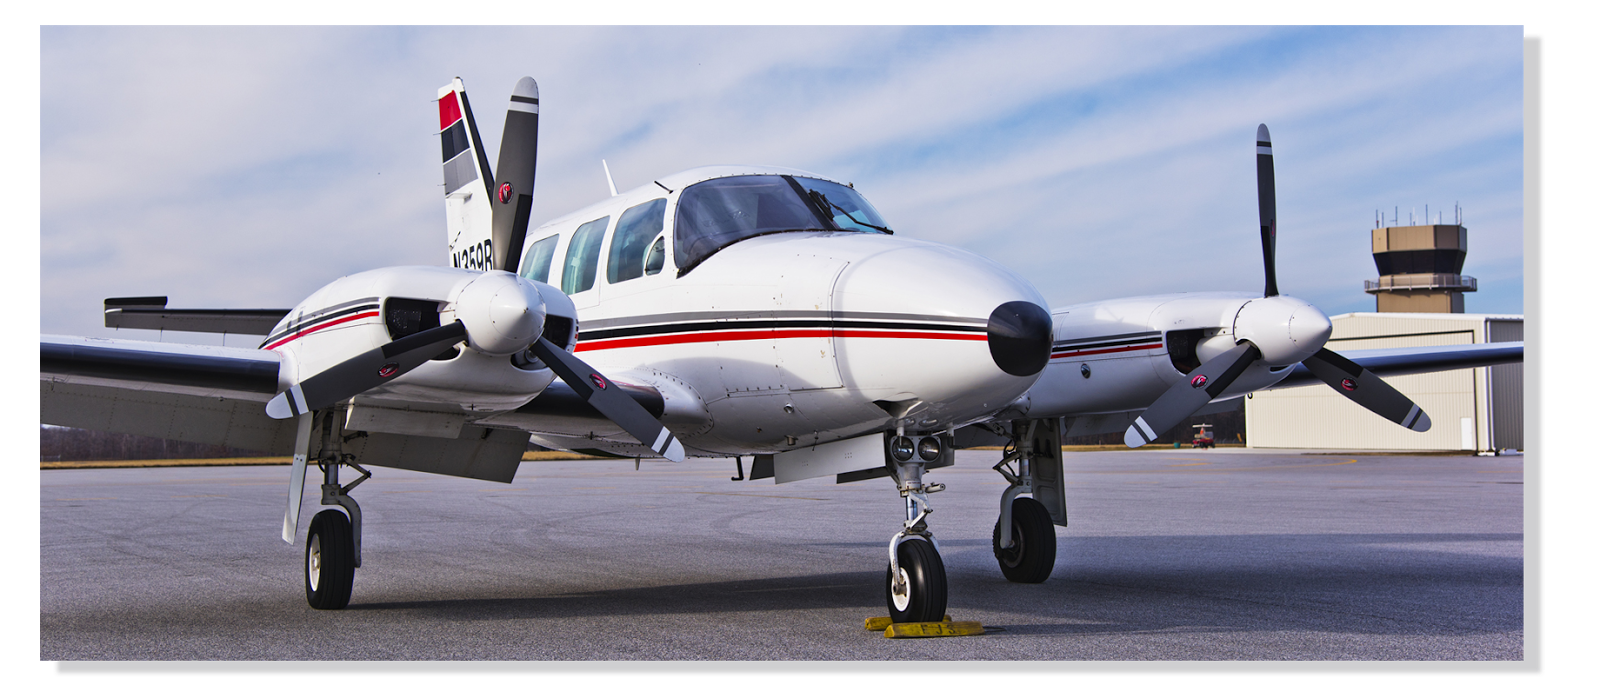 What does the surveyor in the aviation industry